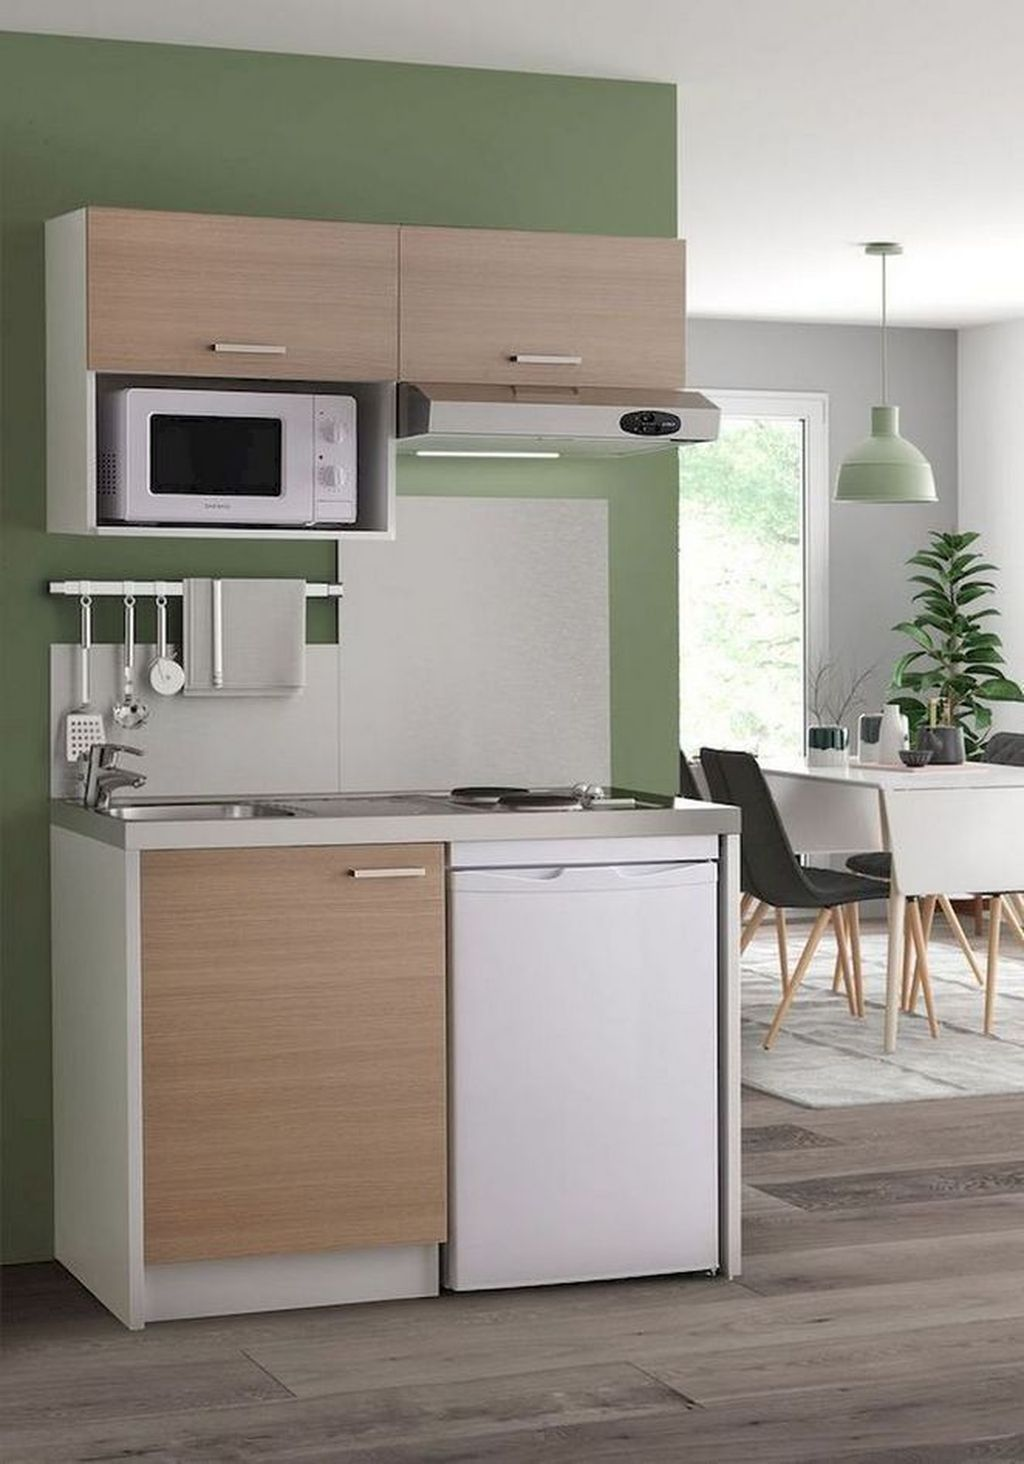 Best 35 Perfect Small Apartment Kitchen Design And Decor Ideas 640 x 480